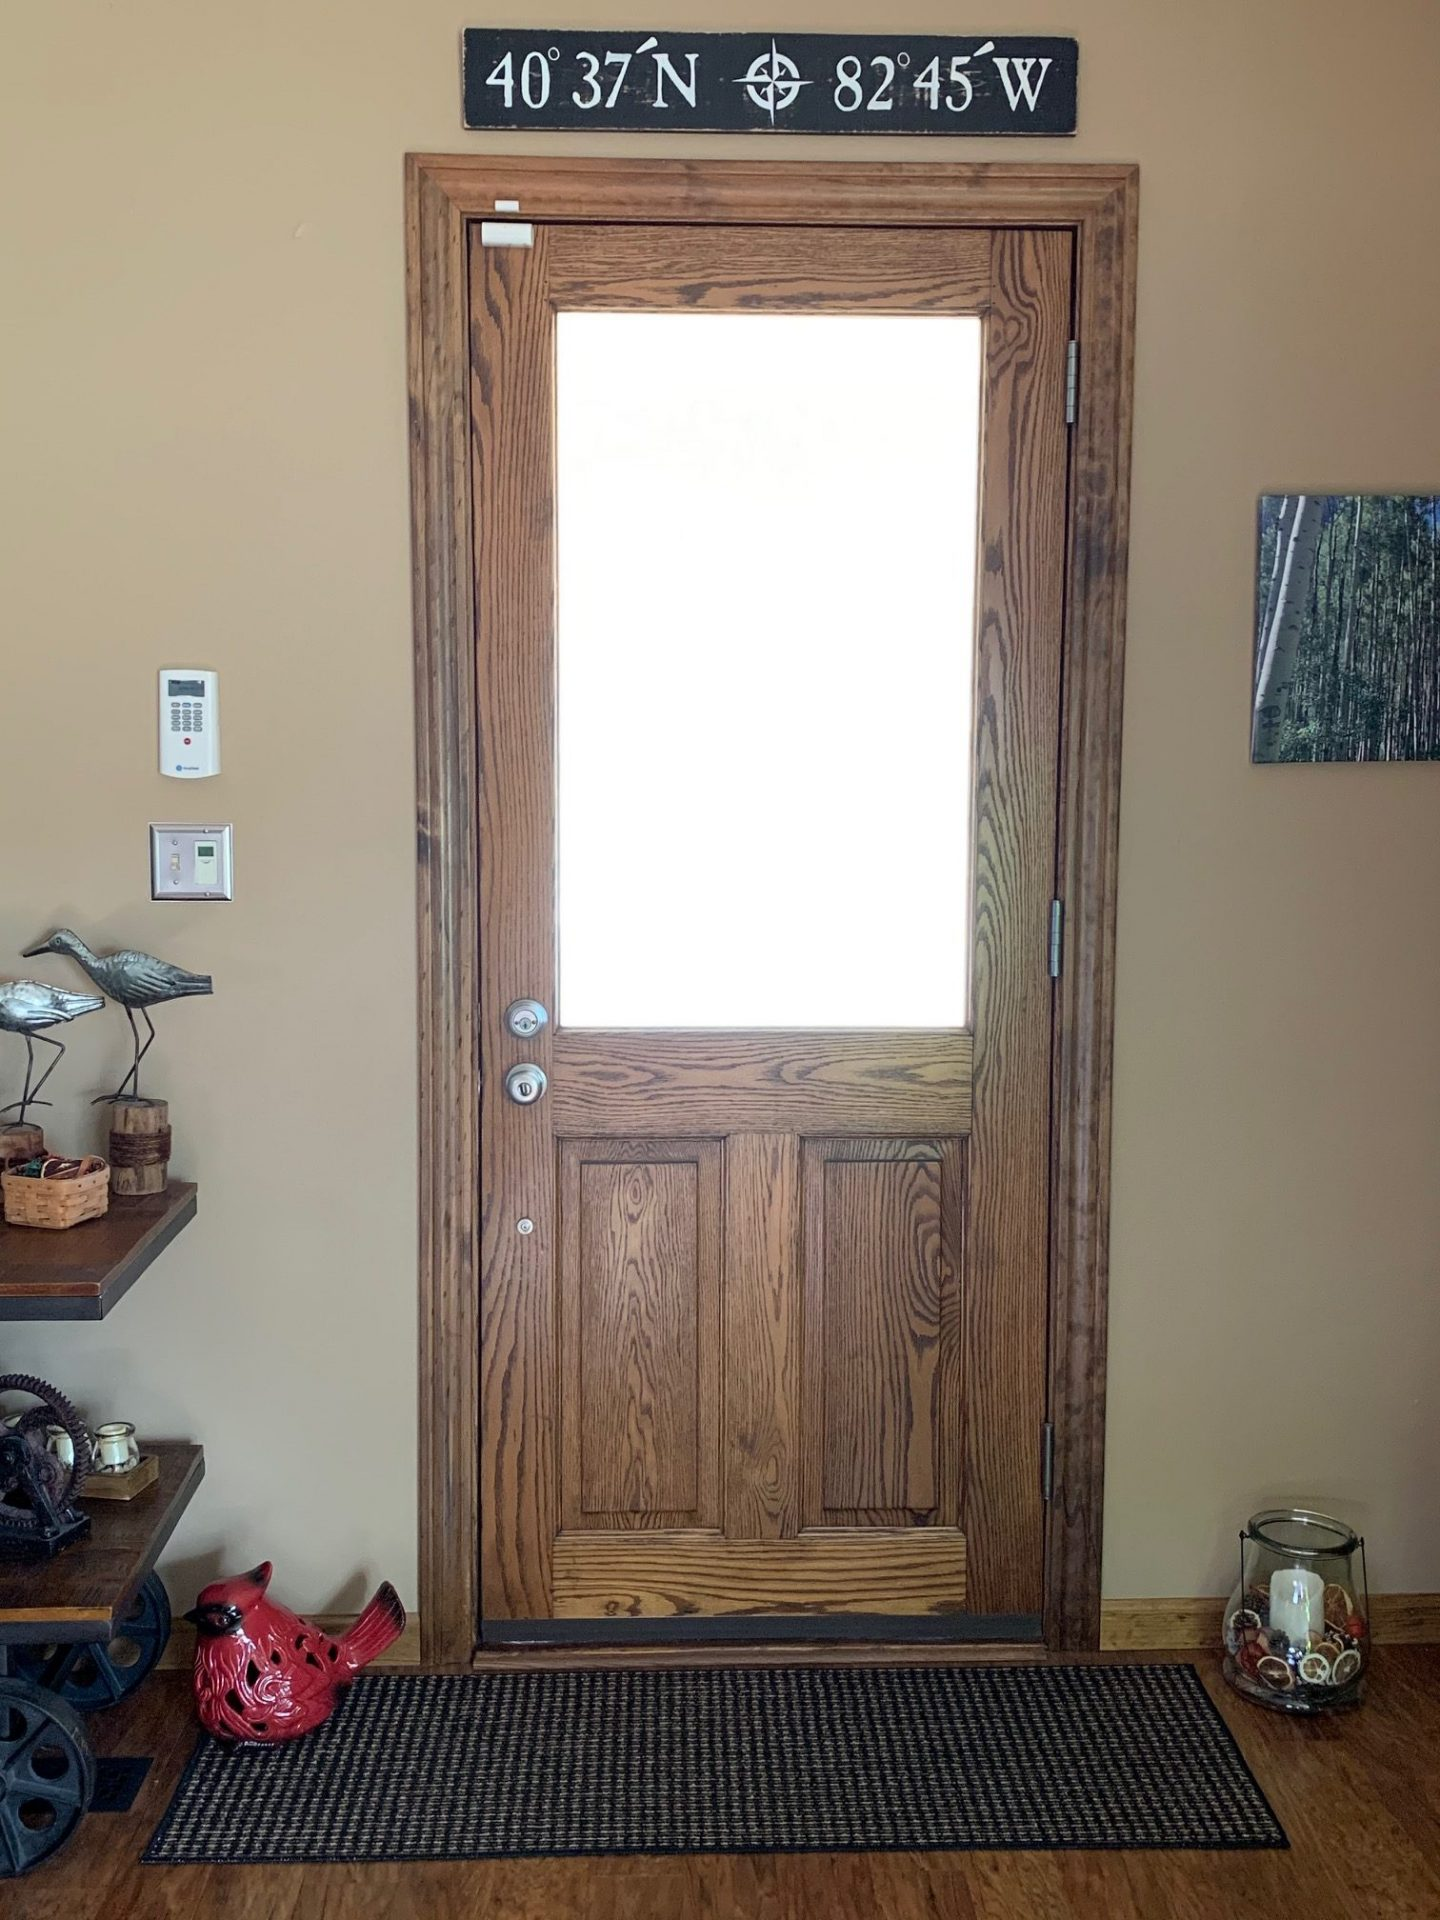 Client had a large clear dual pane window in her door, but it was a bit cloudy.